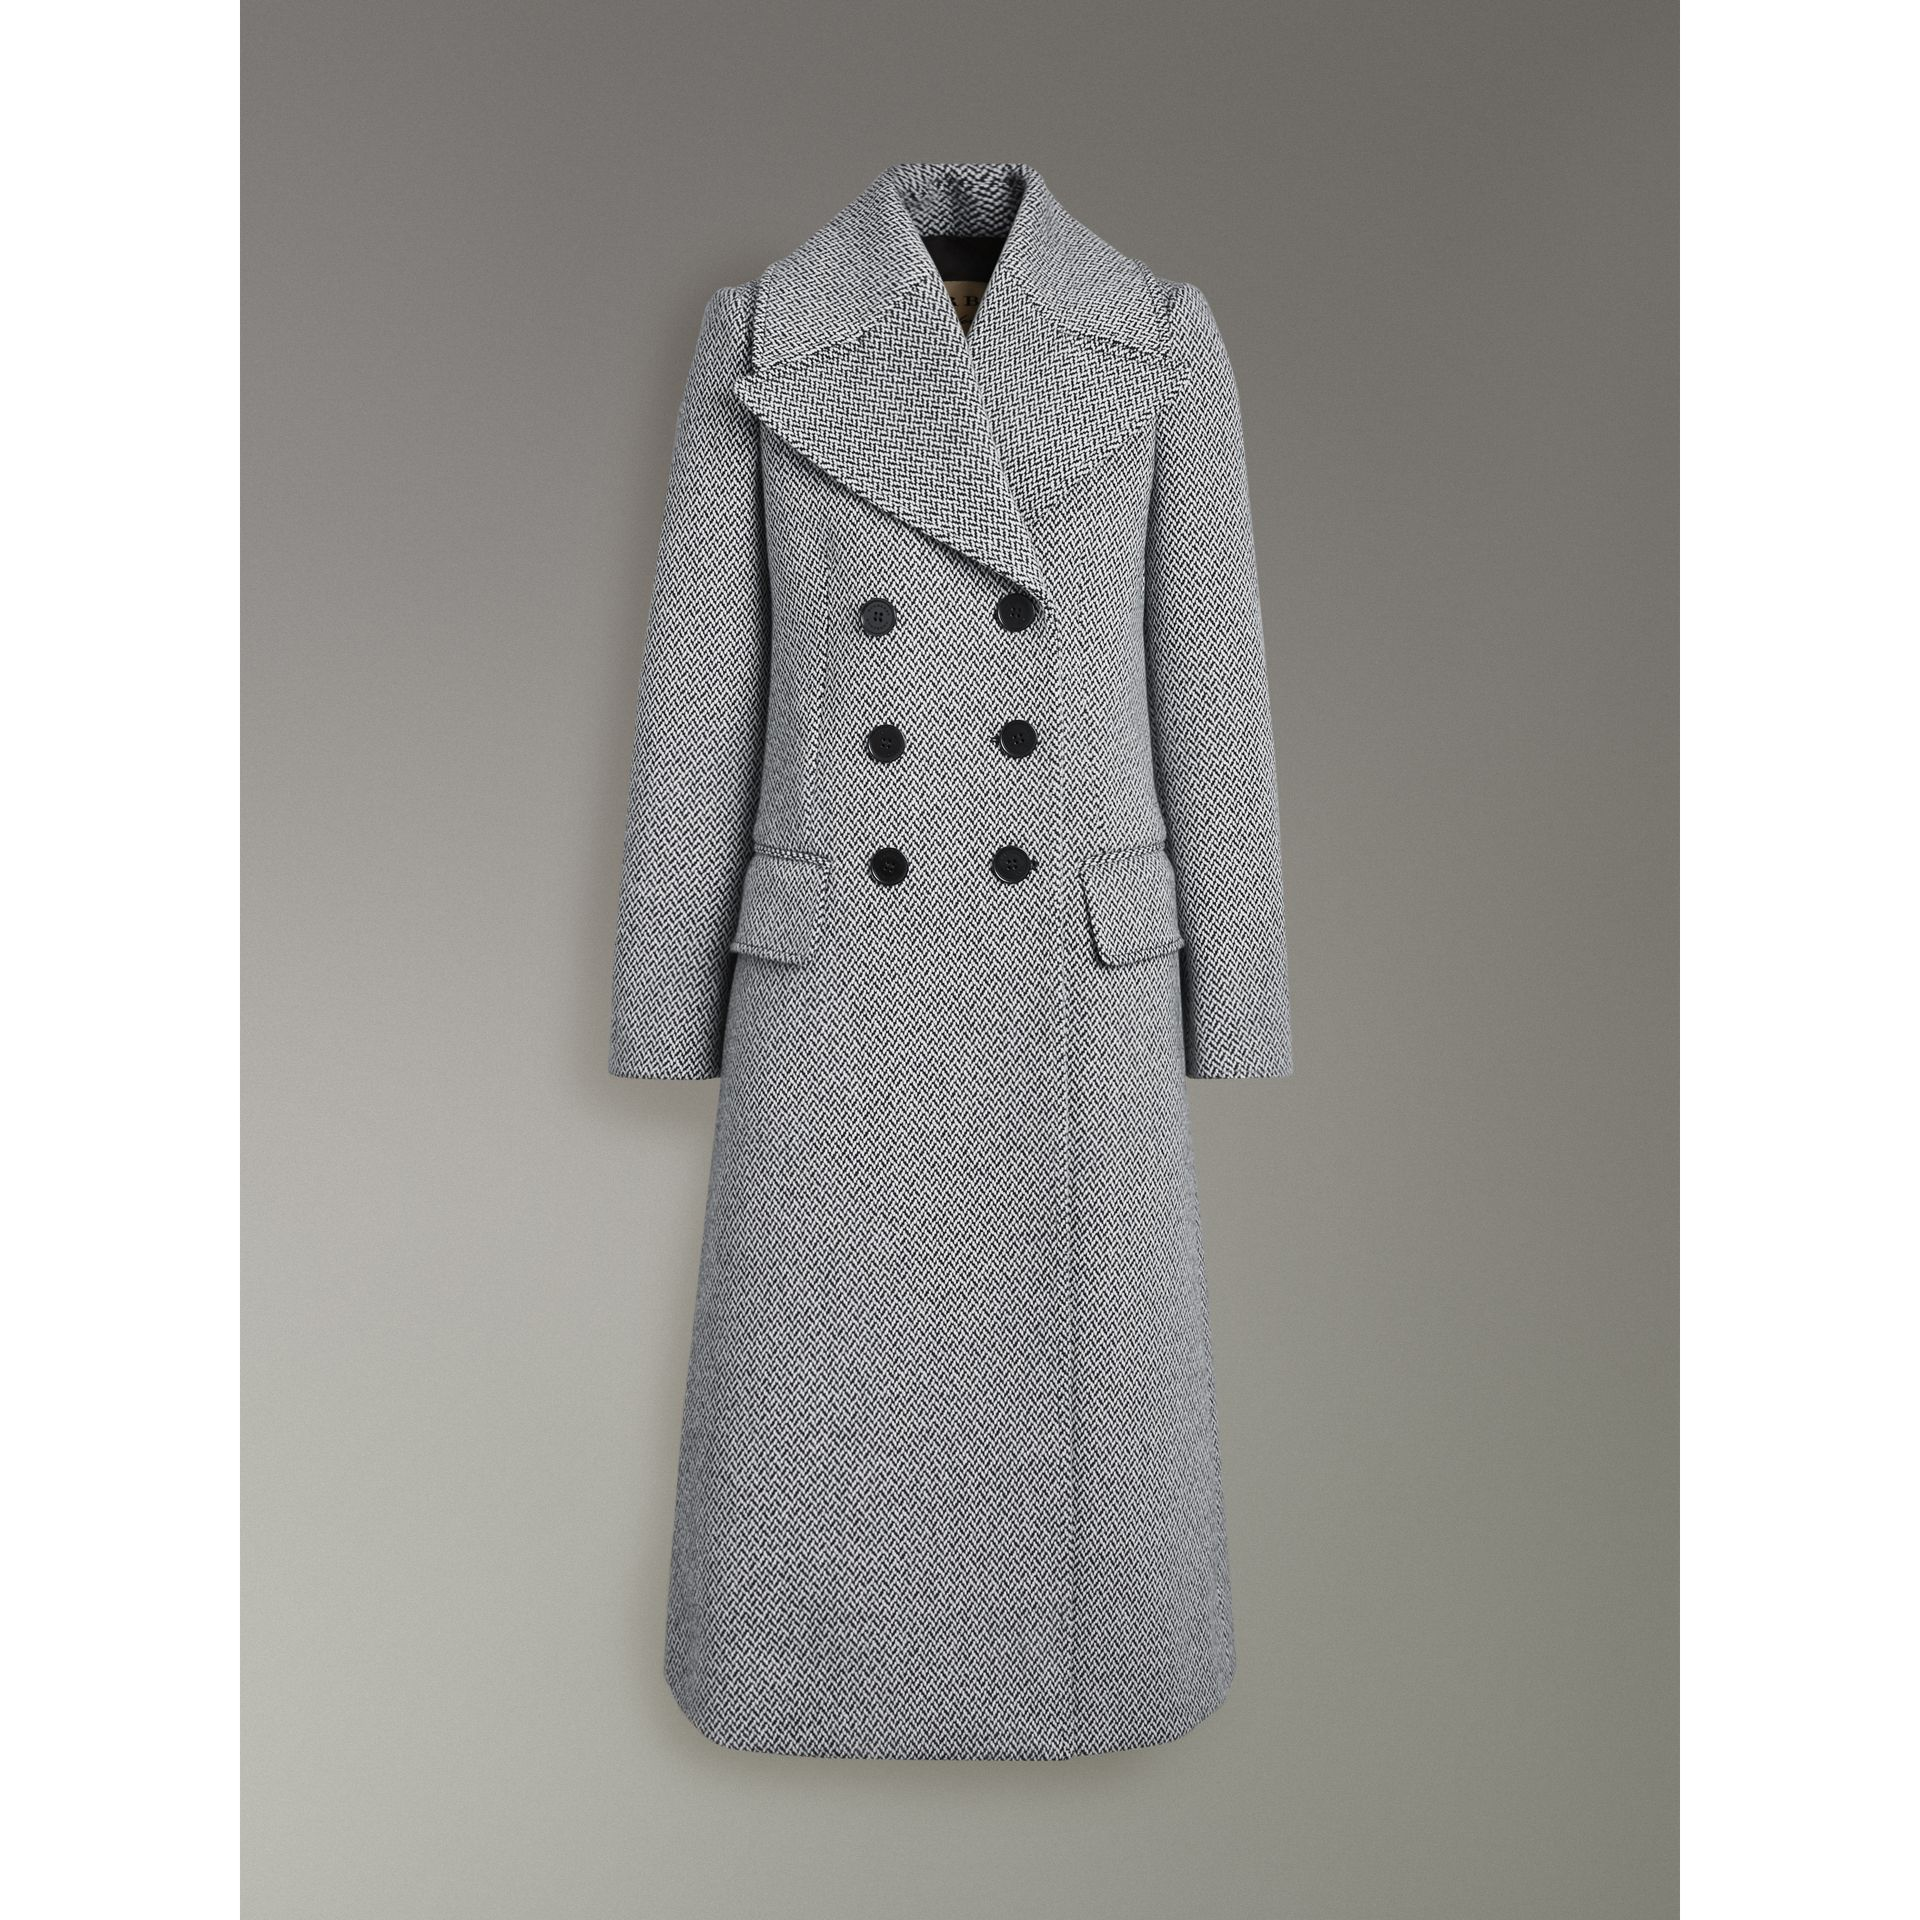 Herringbone Wool Blend Tailored Coat in Black/white - Women | Burberry - gallery image 3